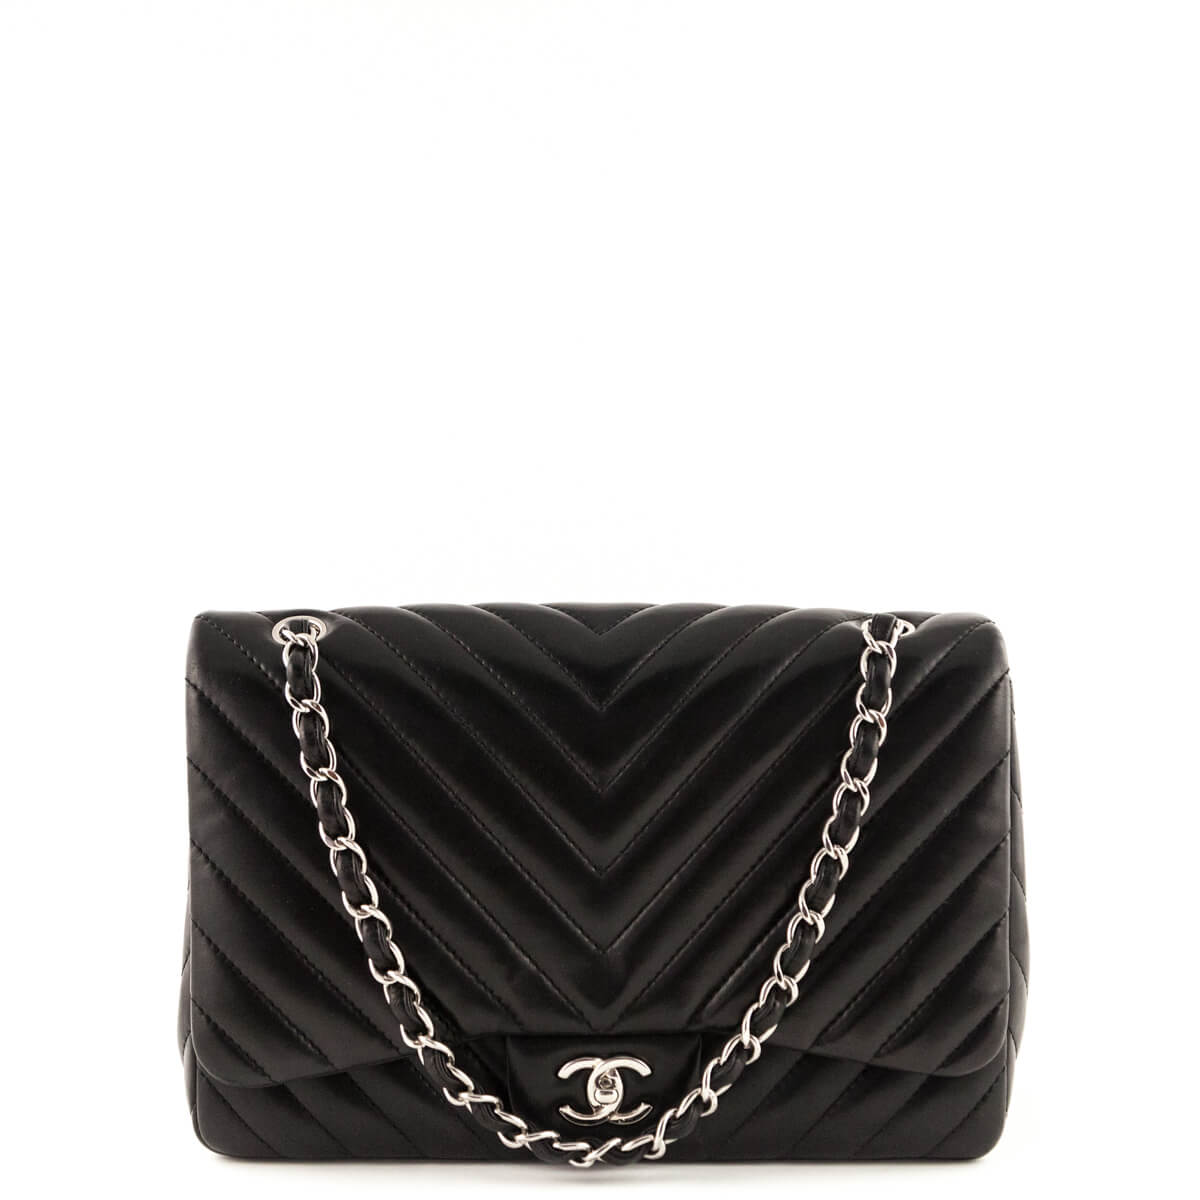 fc8c989893bb Chanel Black Chevron Lambskin Jumbo Single Flap SHW - LOVE that BAG -  Preowned Authentic Designer ...